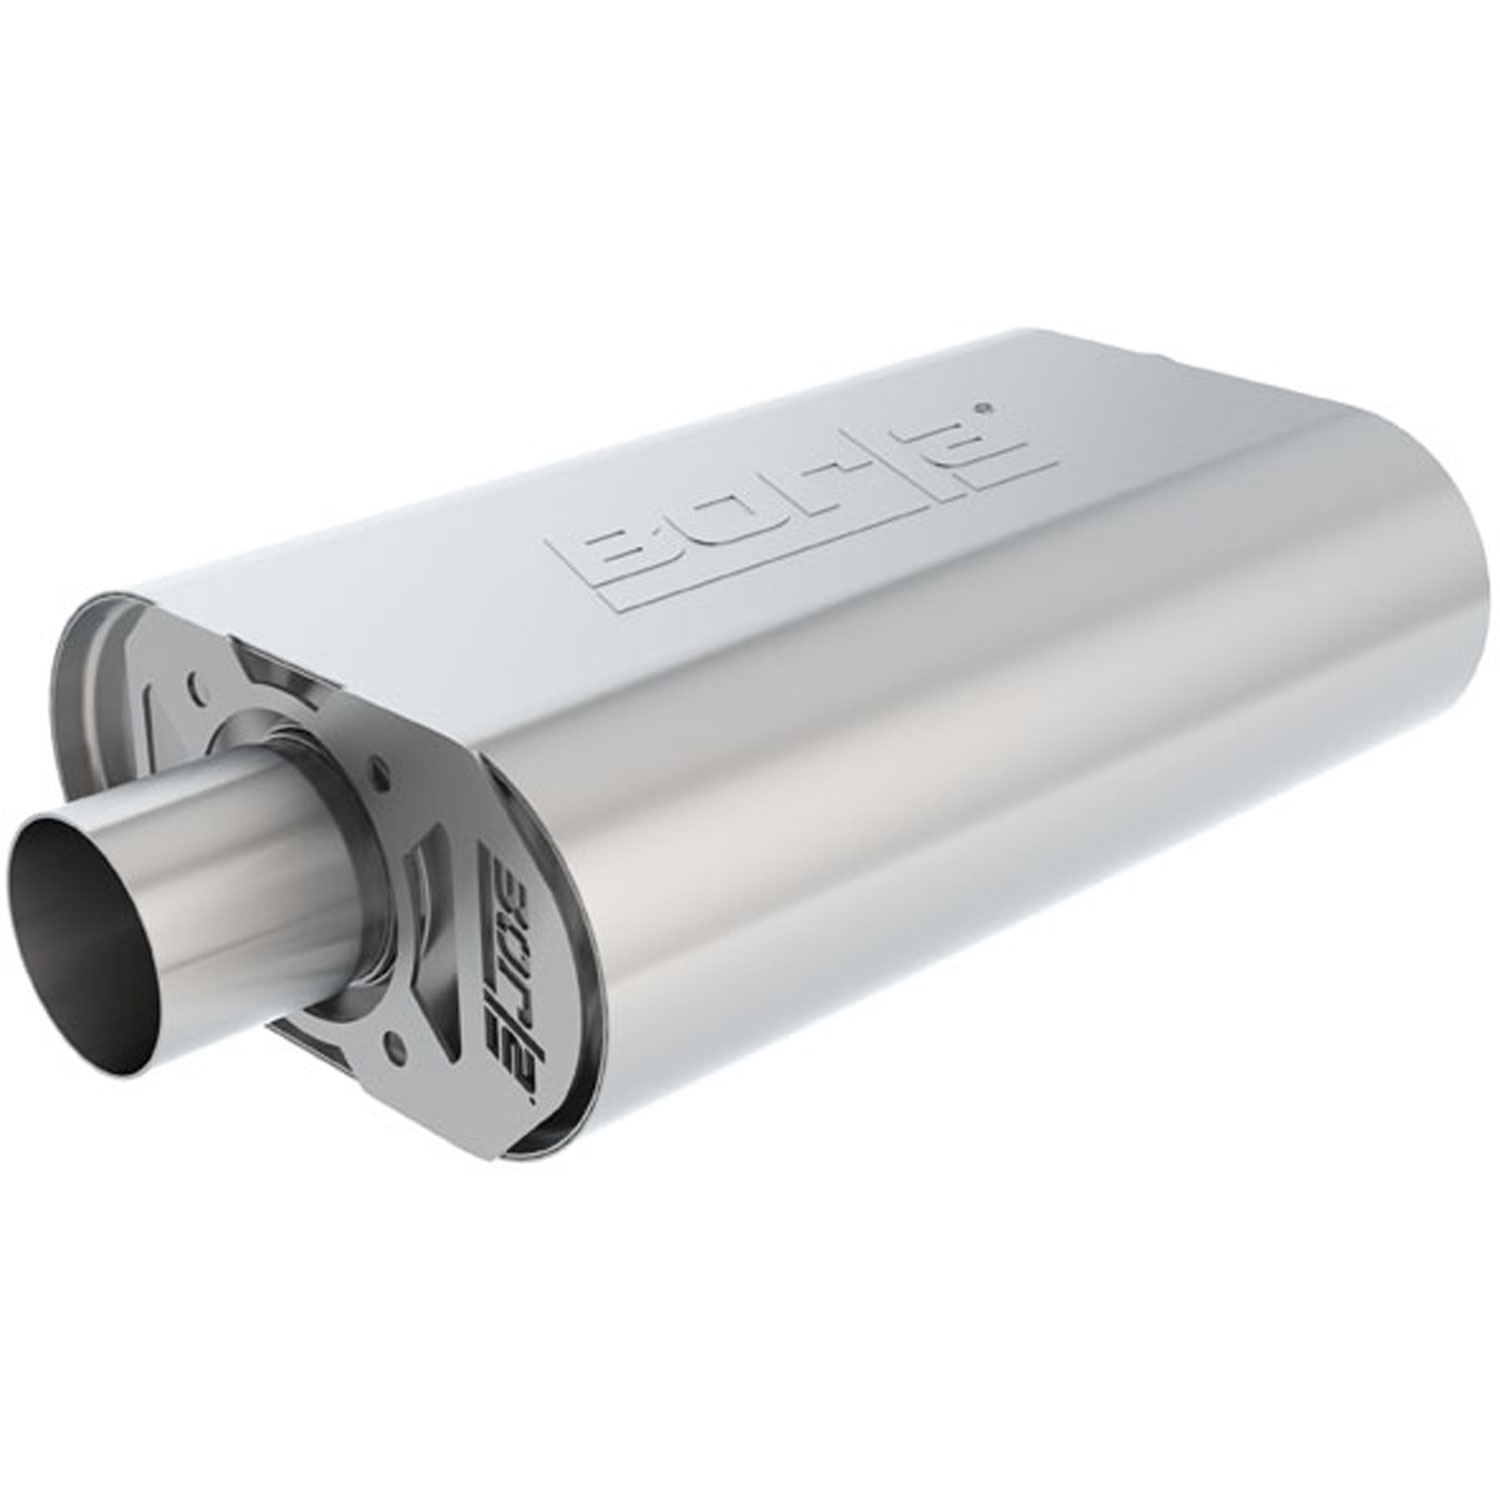 Inlet//Outlet Stainless Steel Borla 400286 Muffler Borla Pro XS 2.5 in